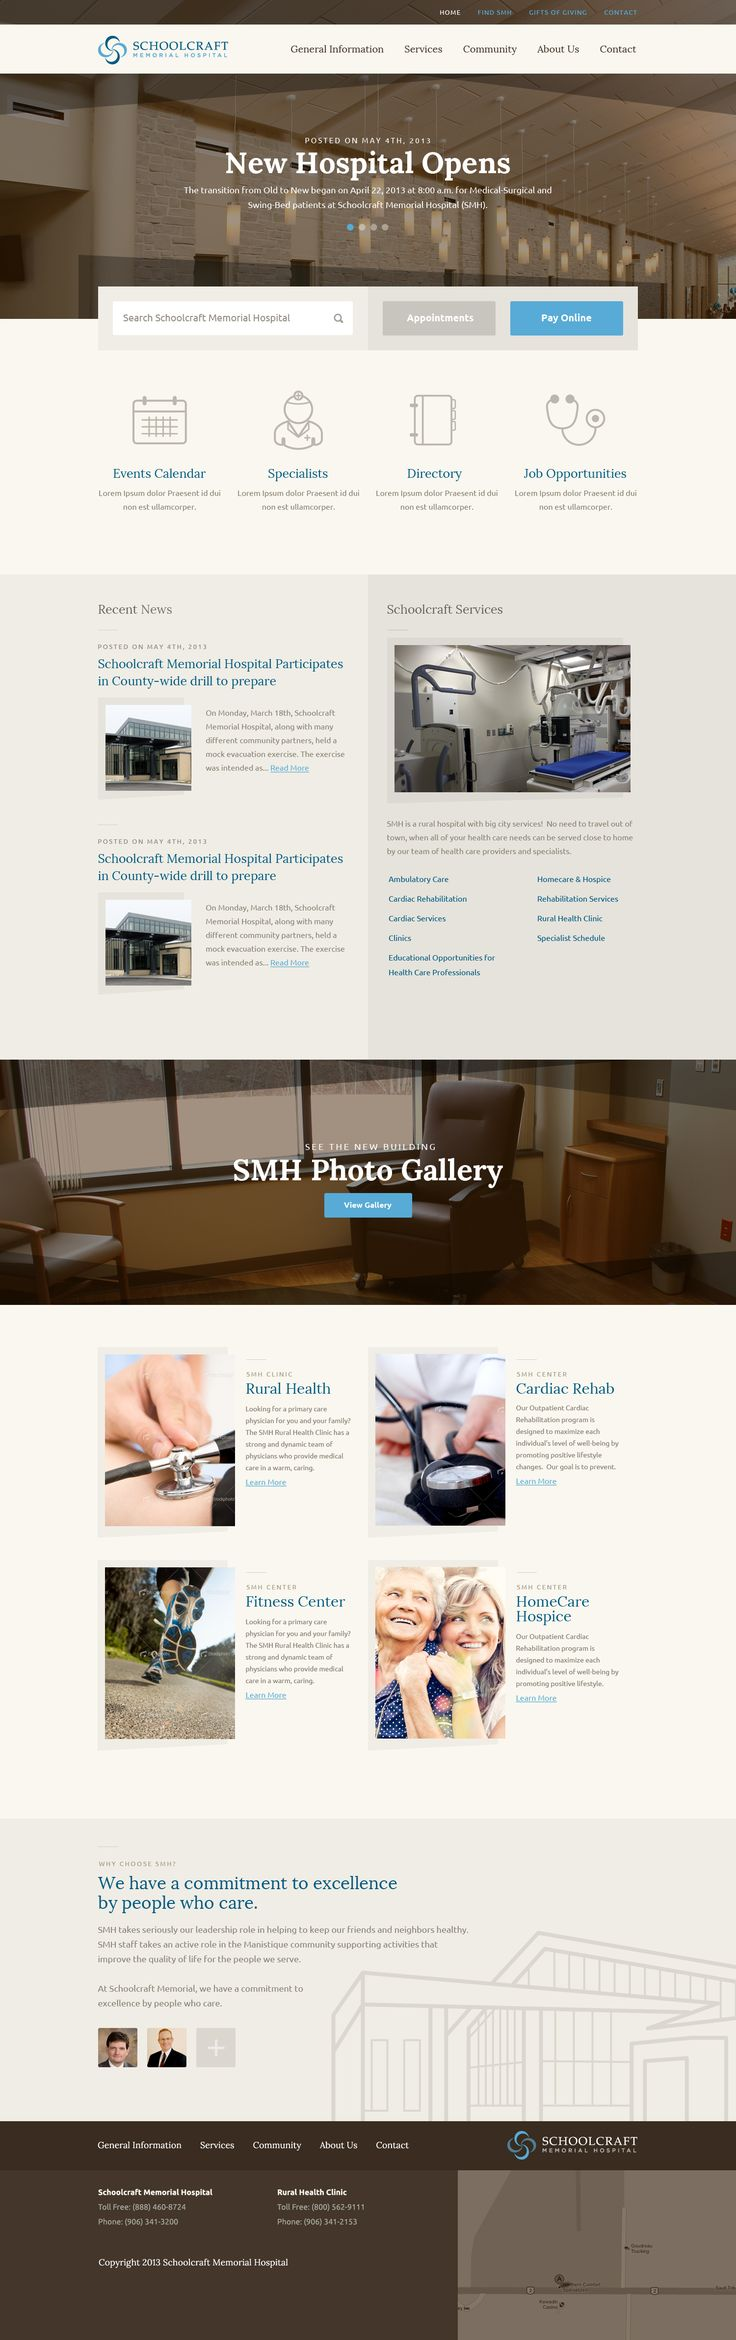 Schoolcraft Hospital #concept #website #web #hospital #business